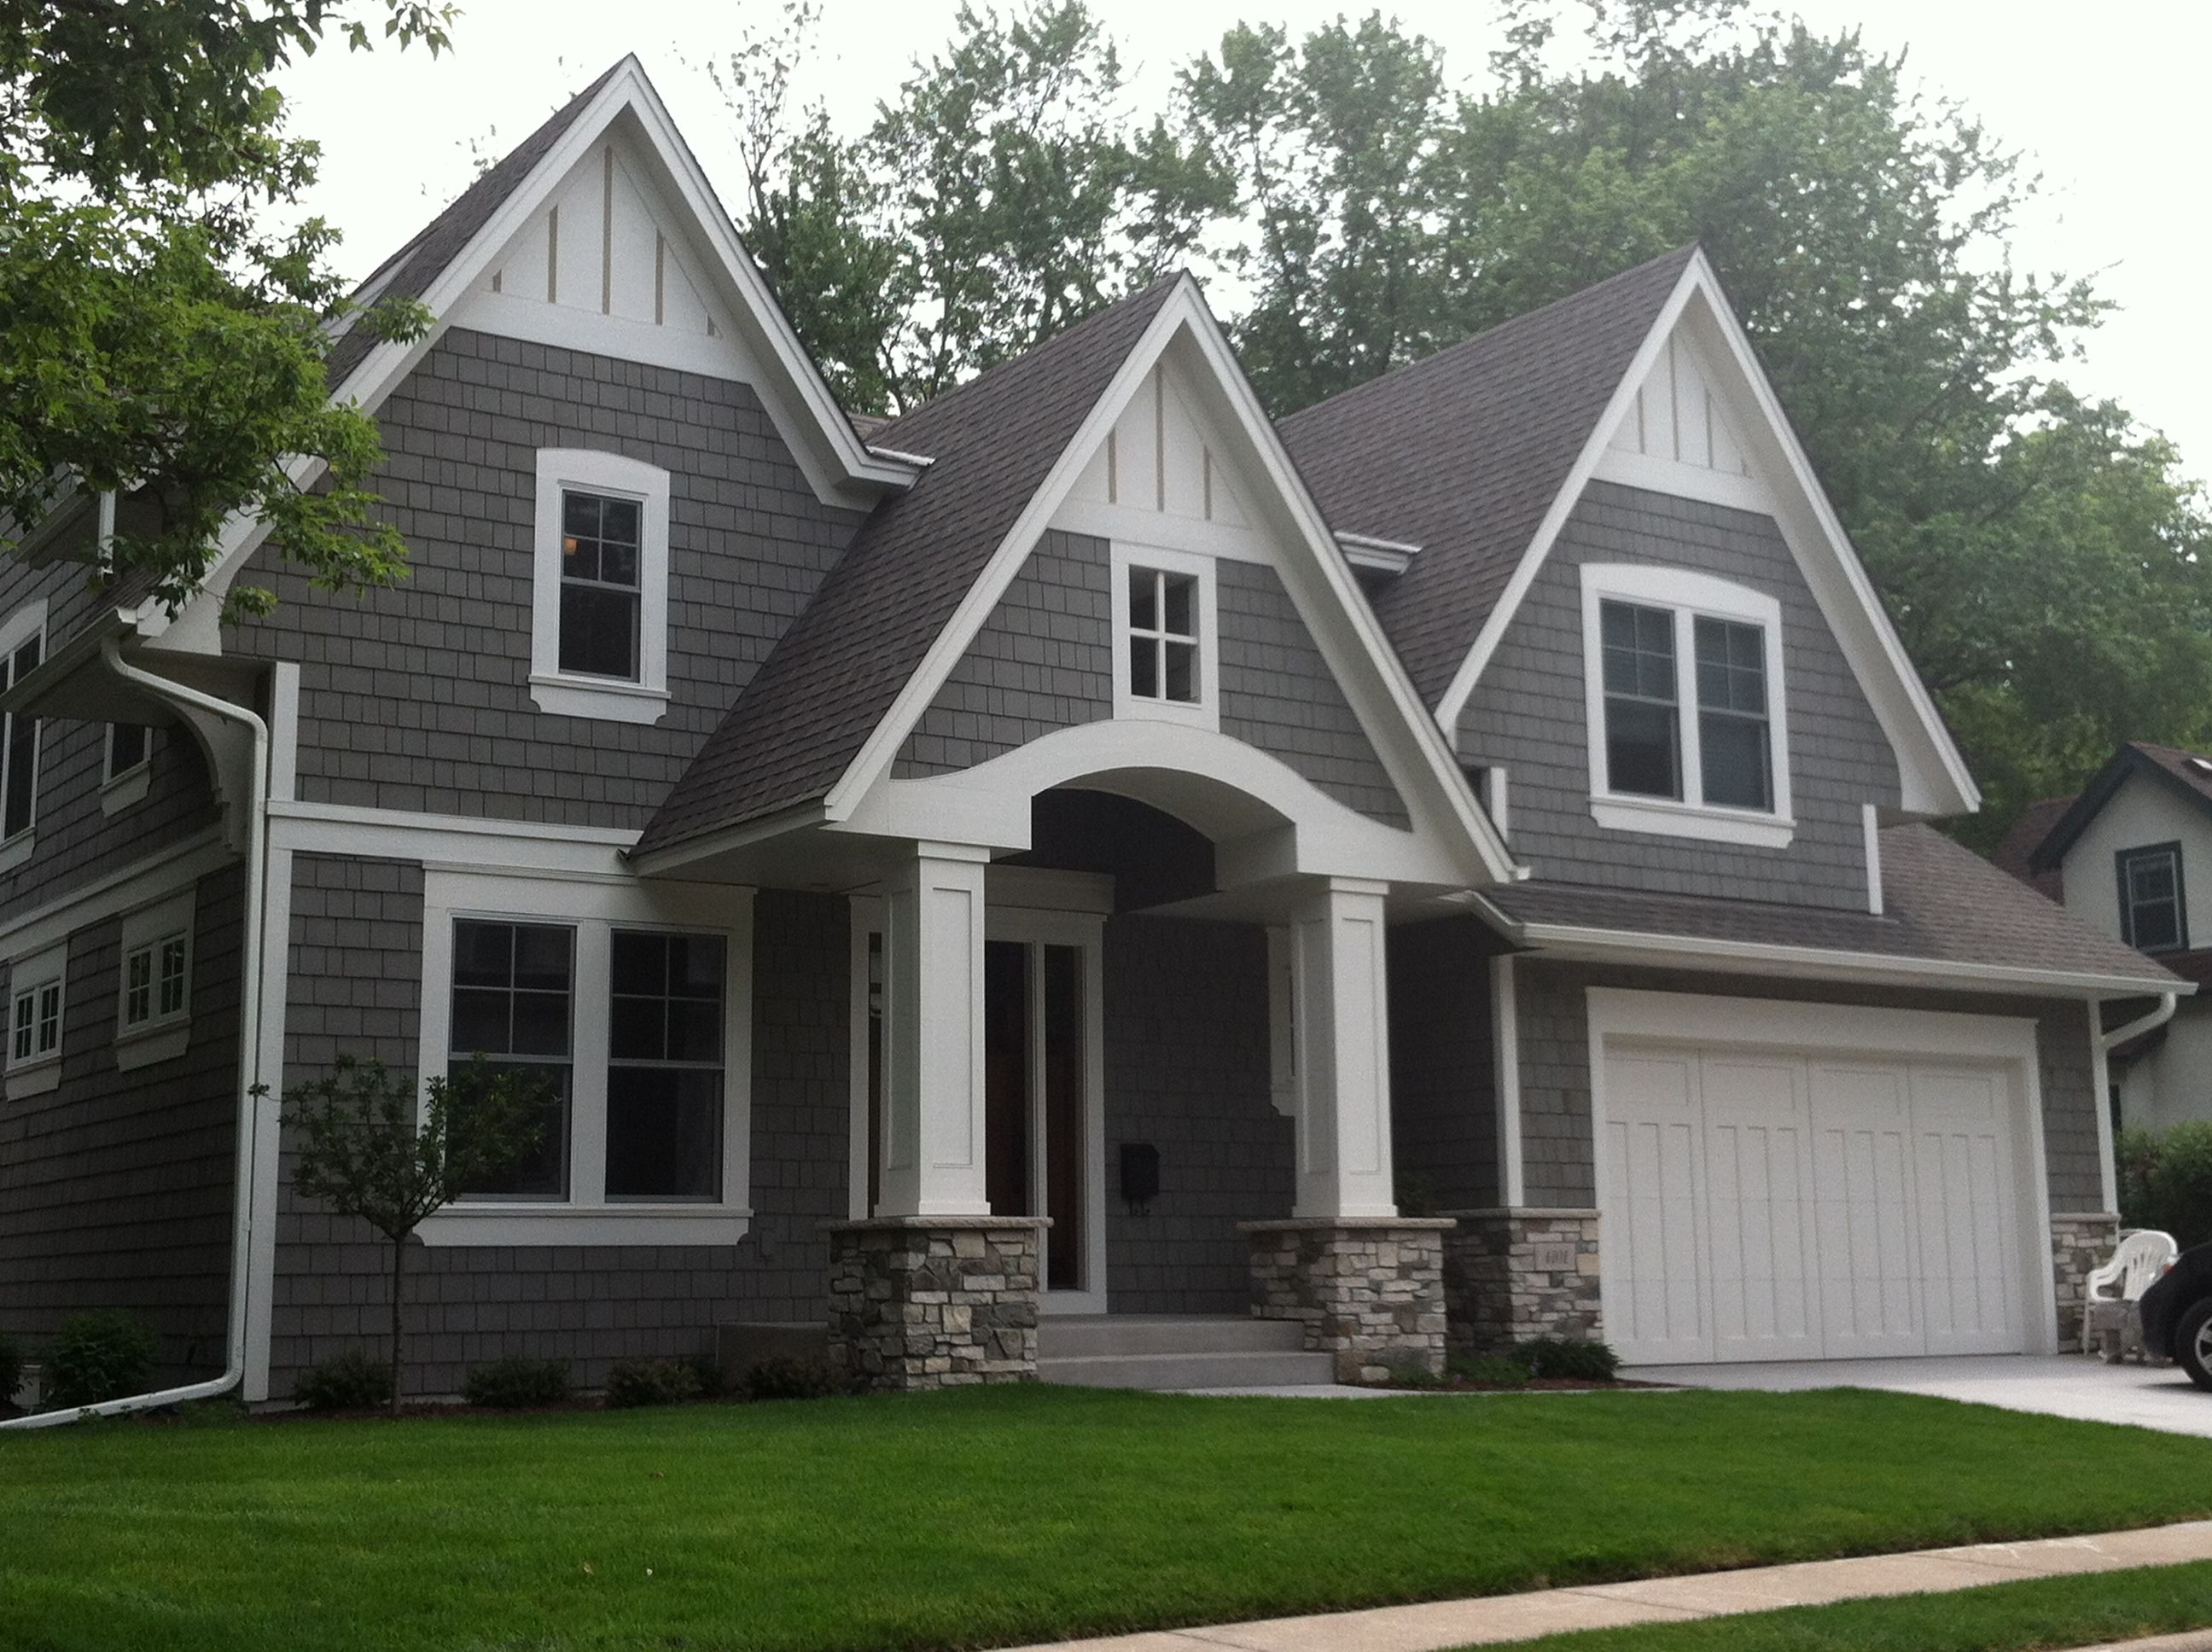 Exterior house color schemes barrier exteriors minnesota for House design exterior colors